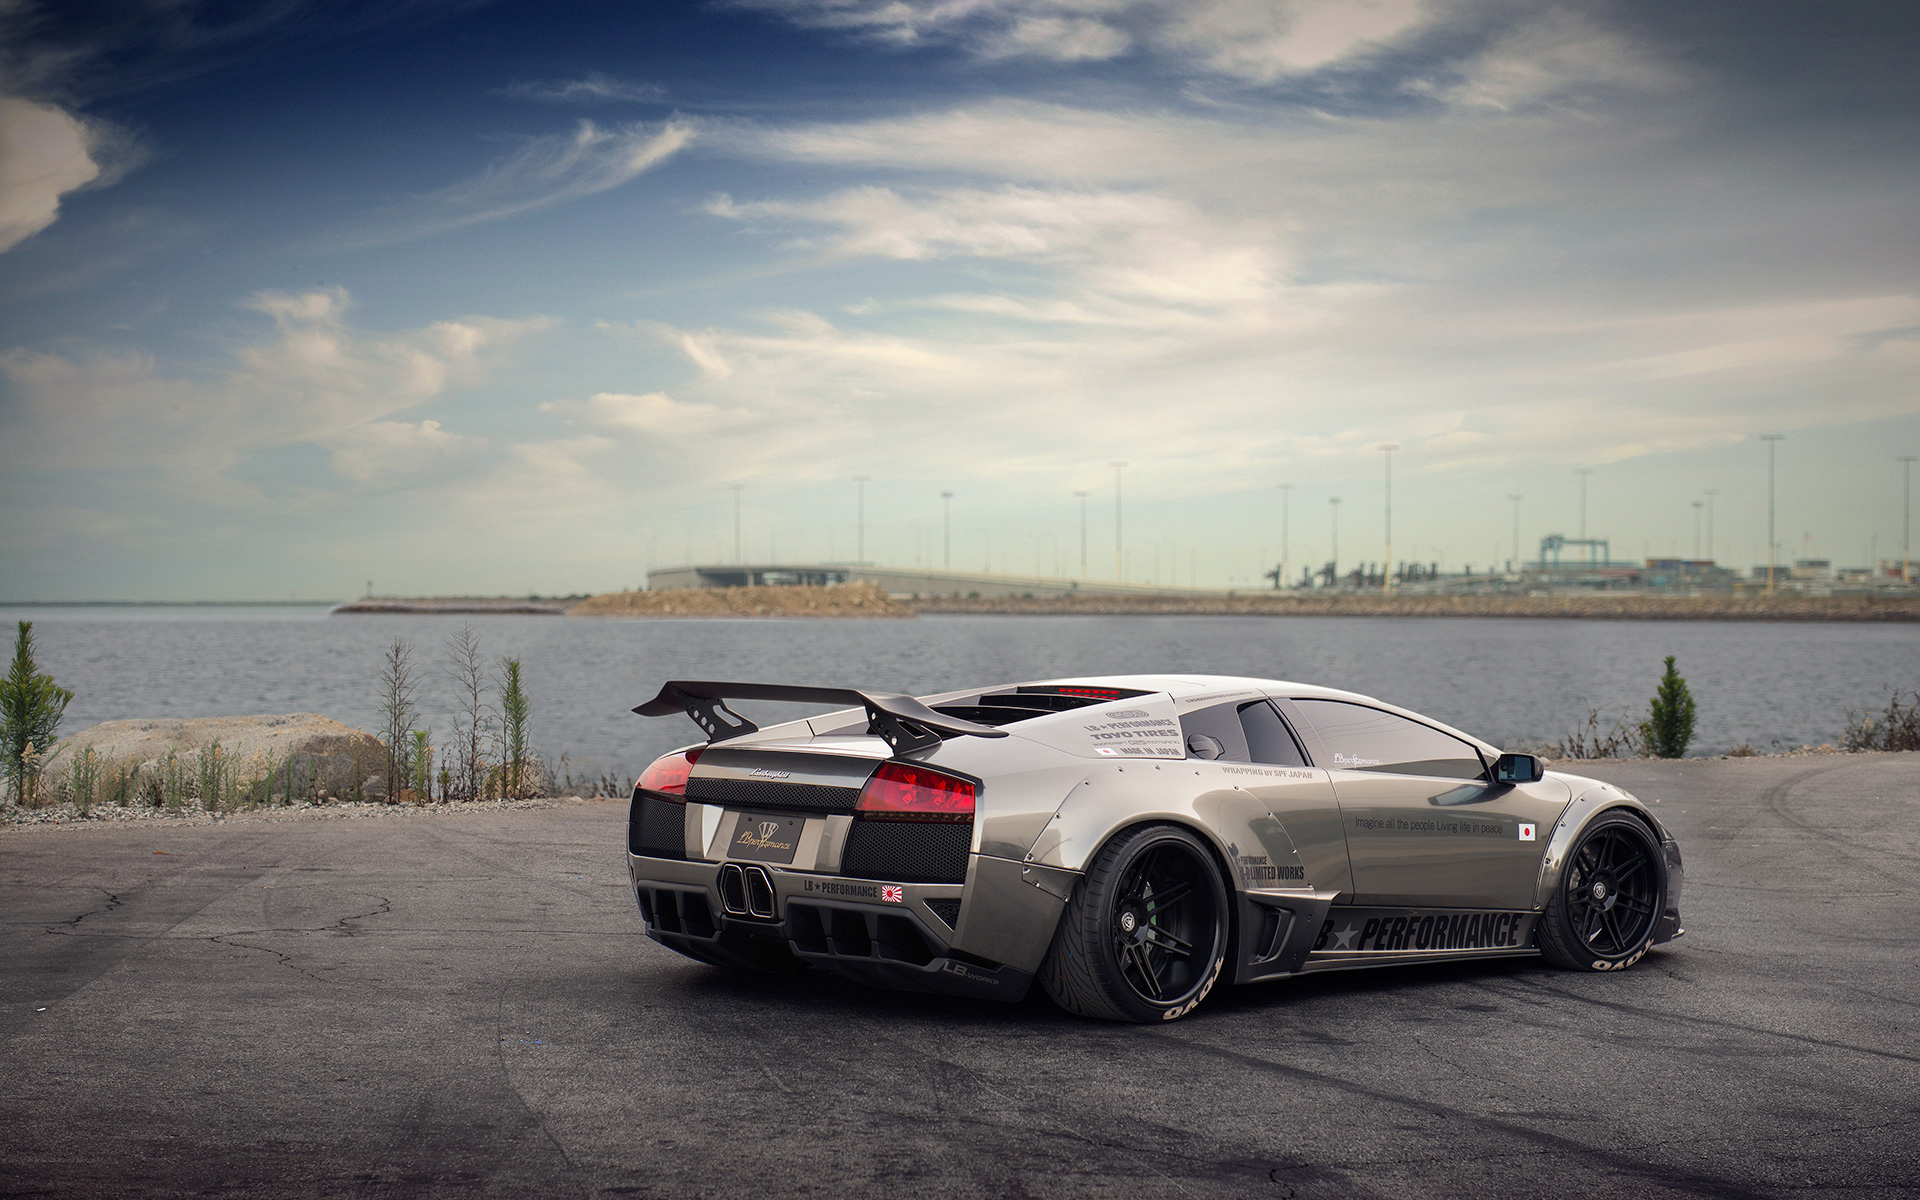 Hd Car Wallpapers Mac 2285308 Hd Wallpaper